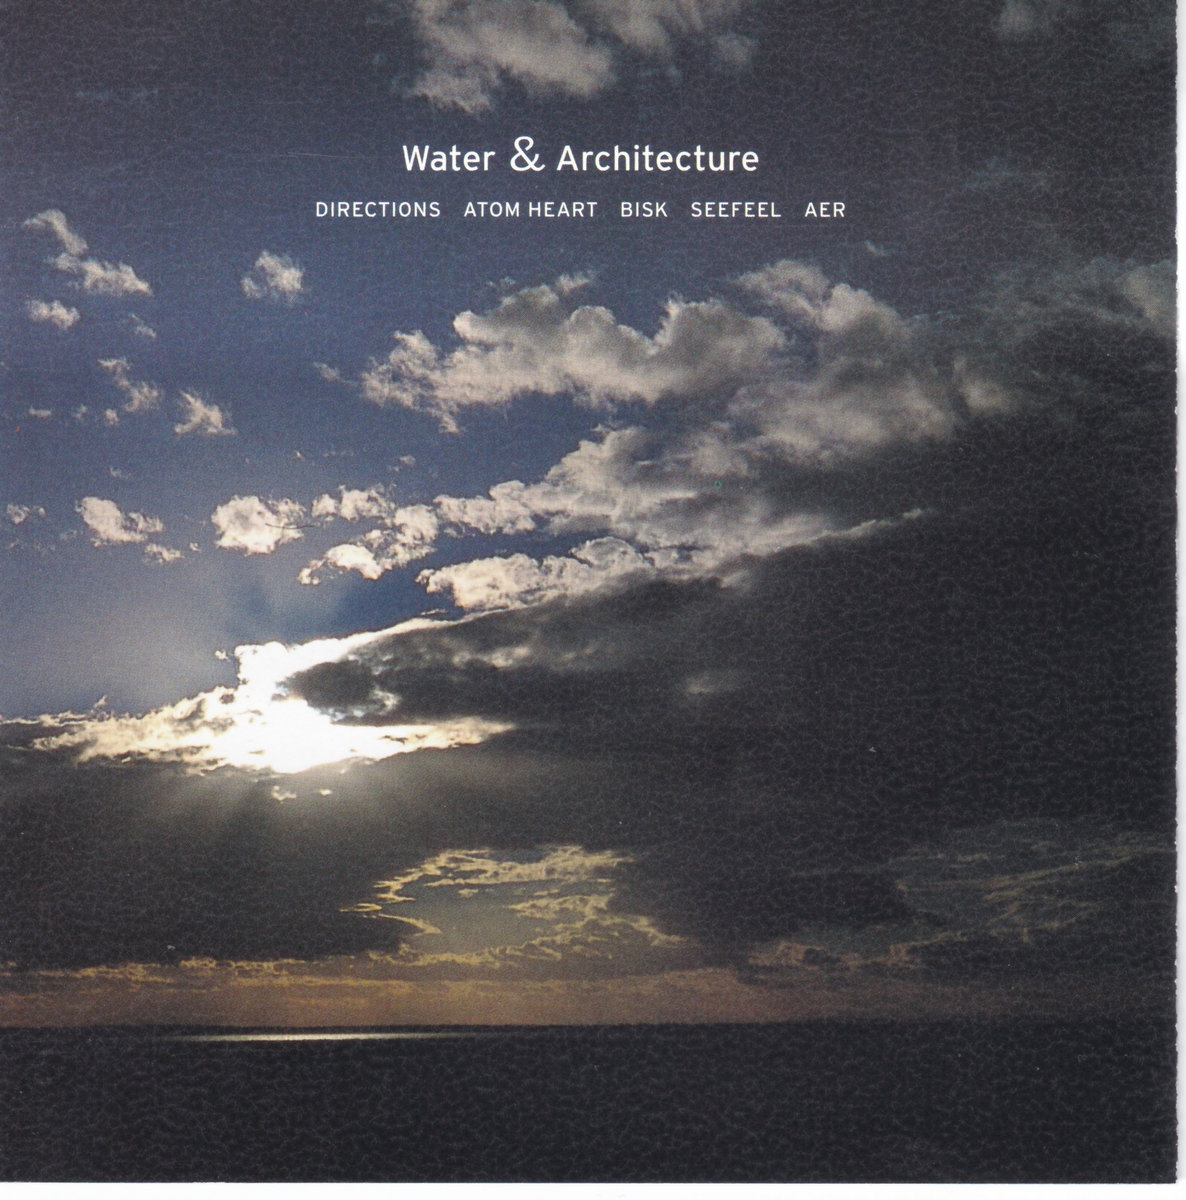 Water & Architecture Atom Heart - Bisk - Seefeel - AER (Jon Wozencroft) - Directions (Bundy K Brown + Doug Sharin) (1998)